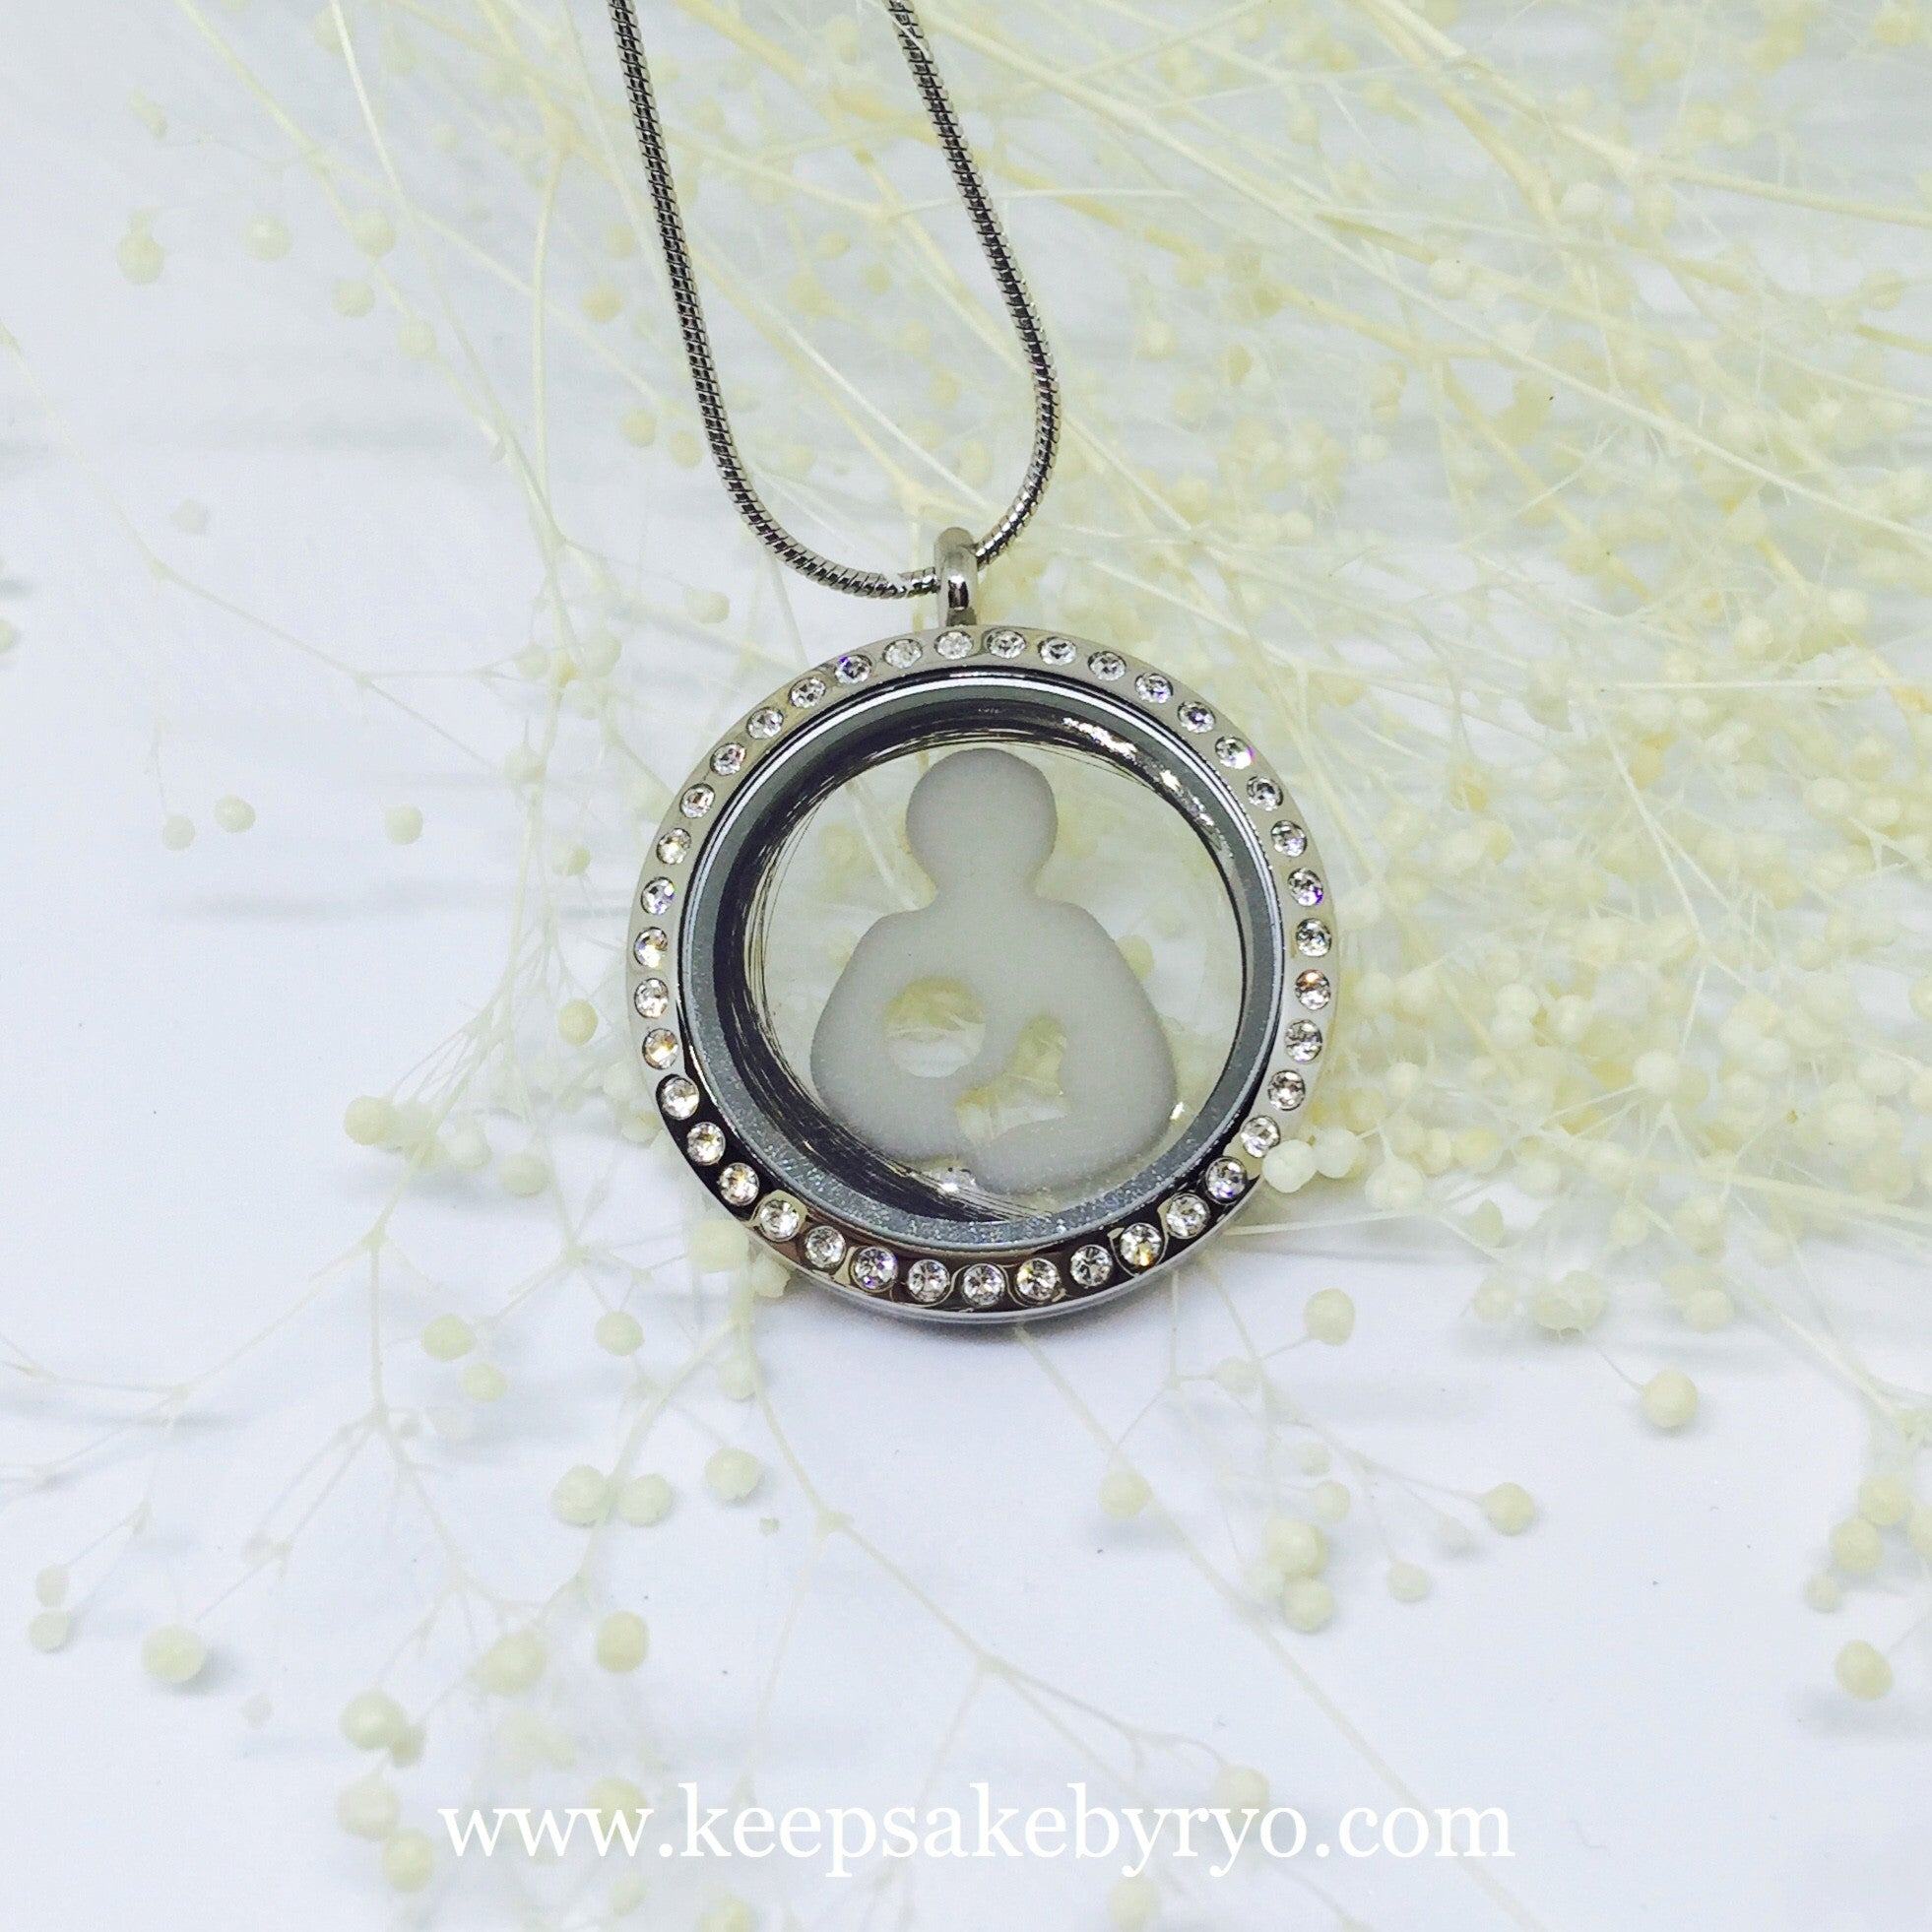 jewelry fur capturemyart lock hair by gift necklace memorial a ashes pet of keepsake floating locket dog glass loss pin